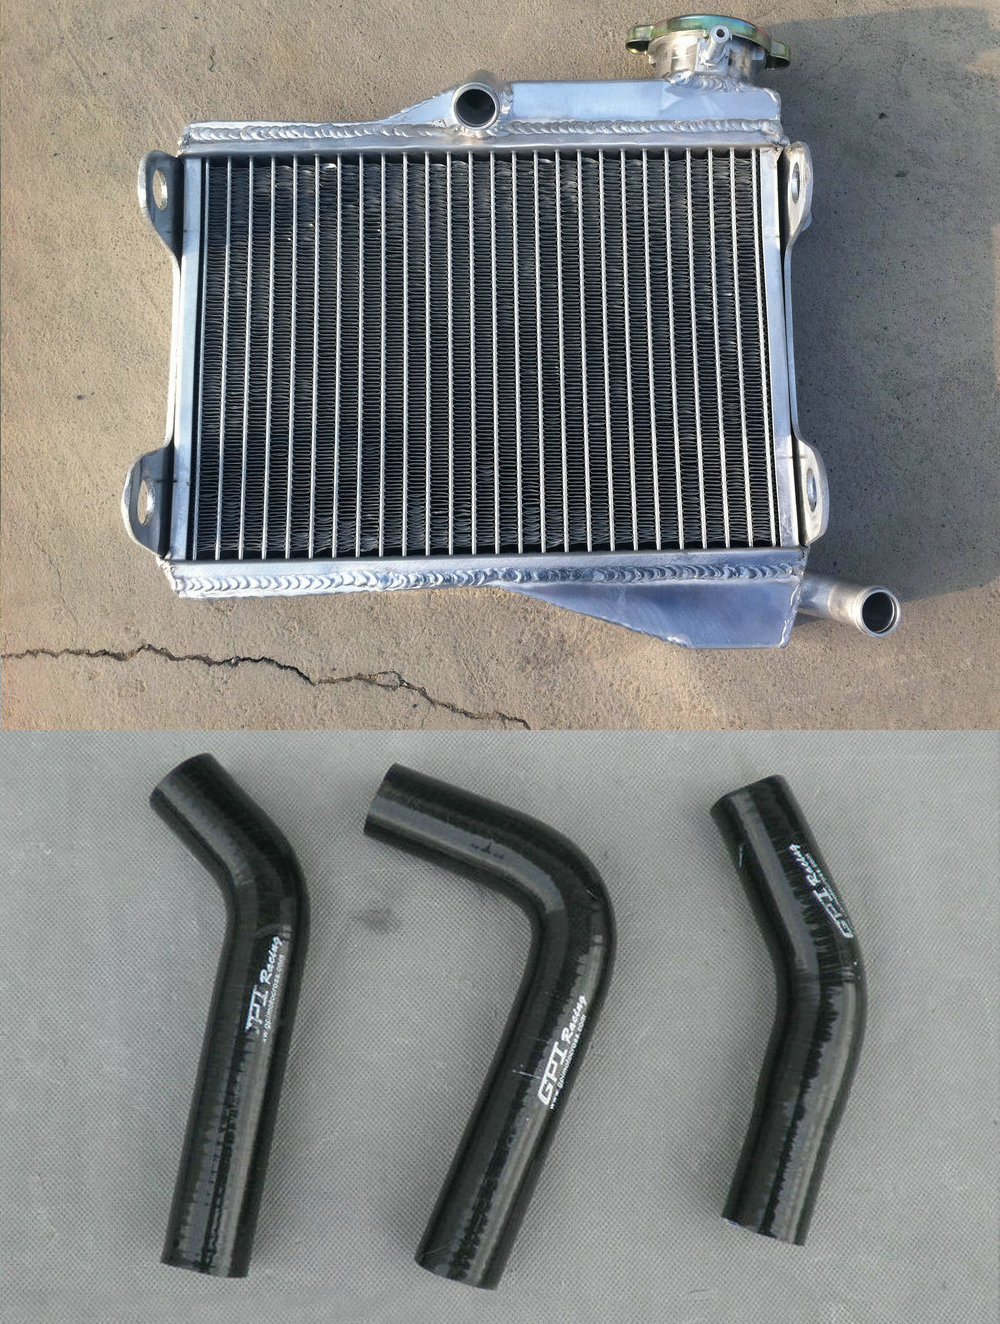 Black silicone radiator hose for YAMAHA RD250 RD350 LC 4L0 4L1